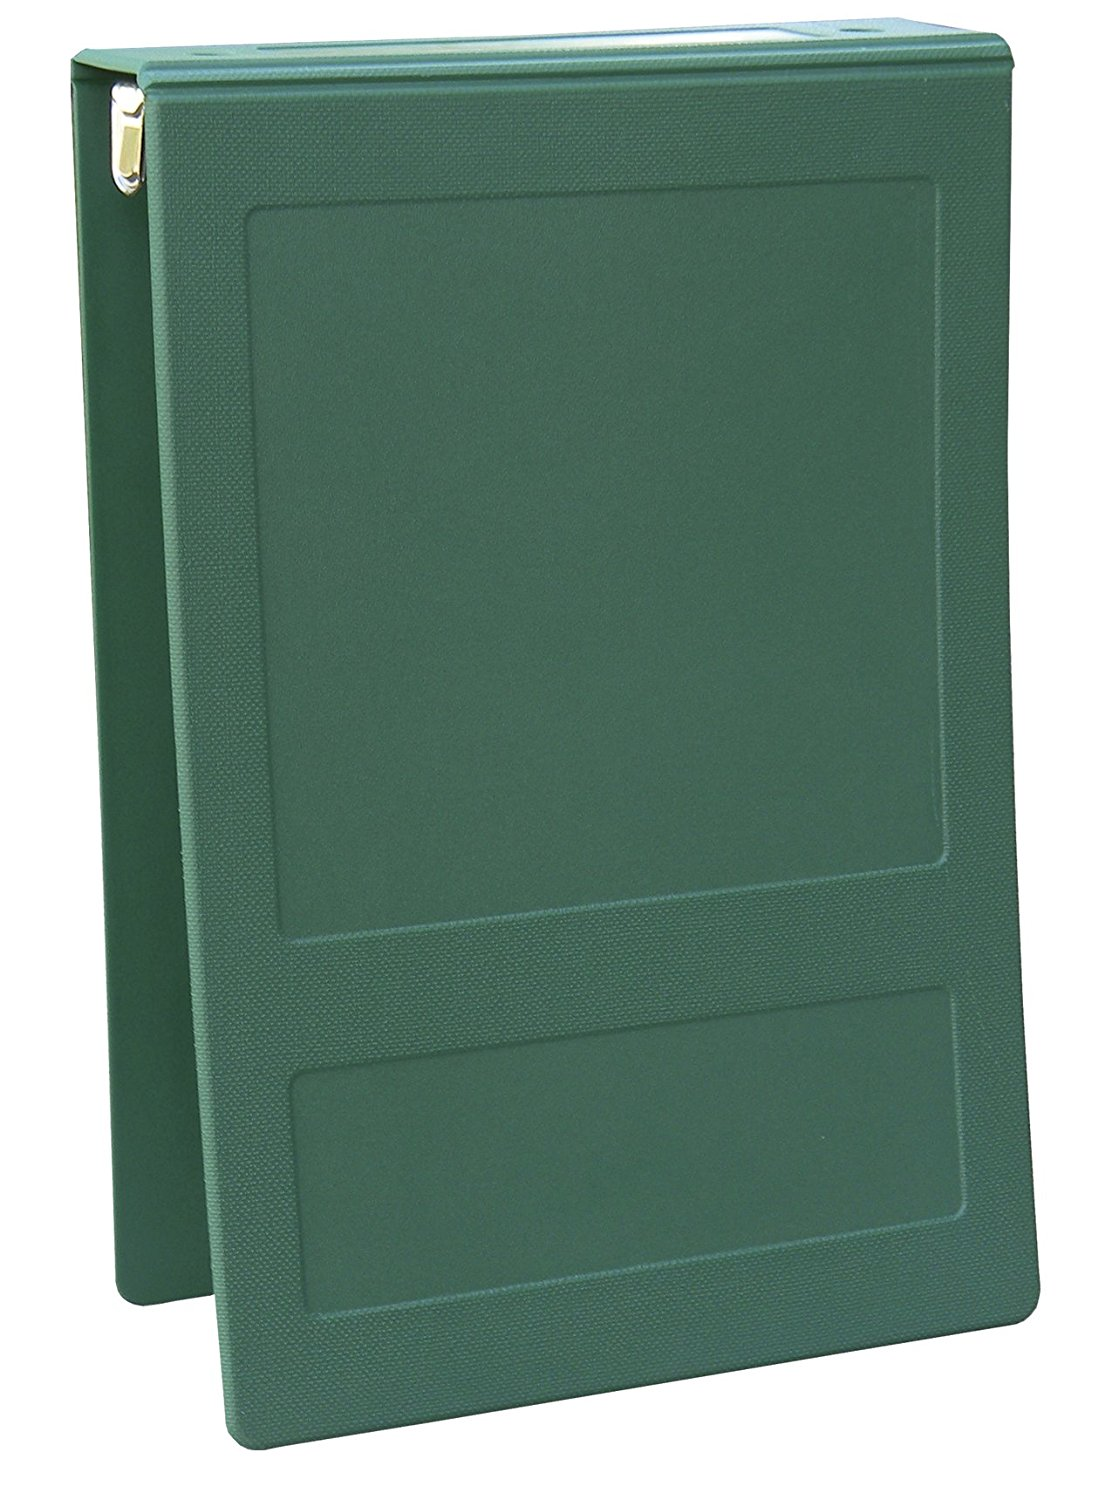 "Top Open 5 Ring Molded Binder Size: 1.5"", Color: Forest Green"